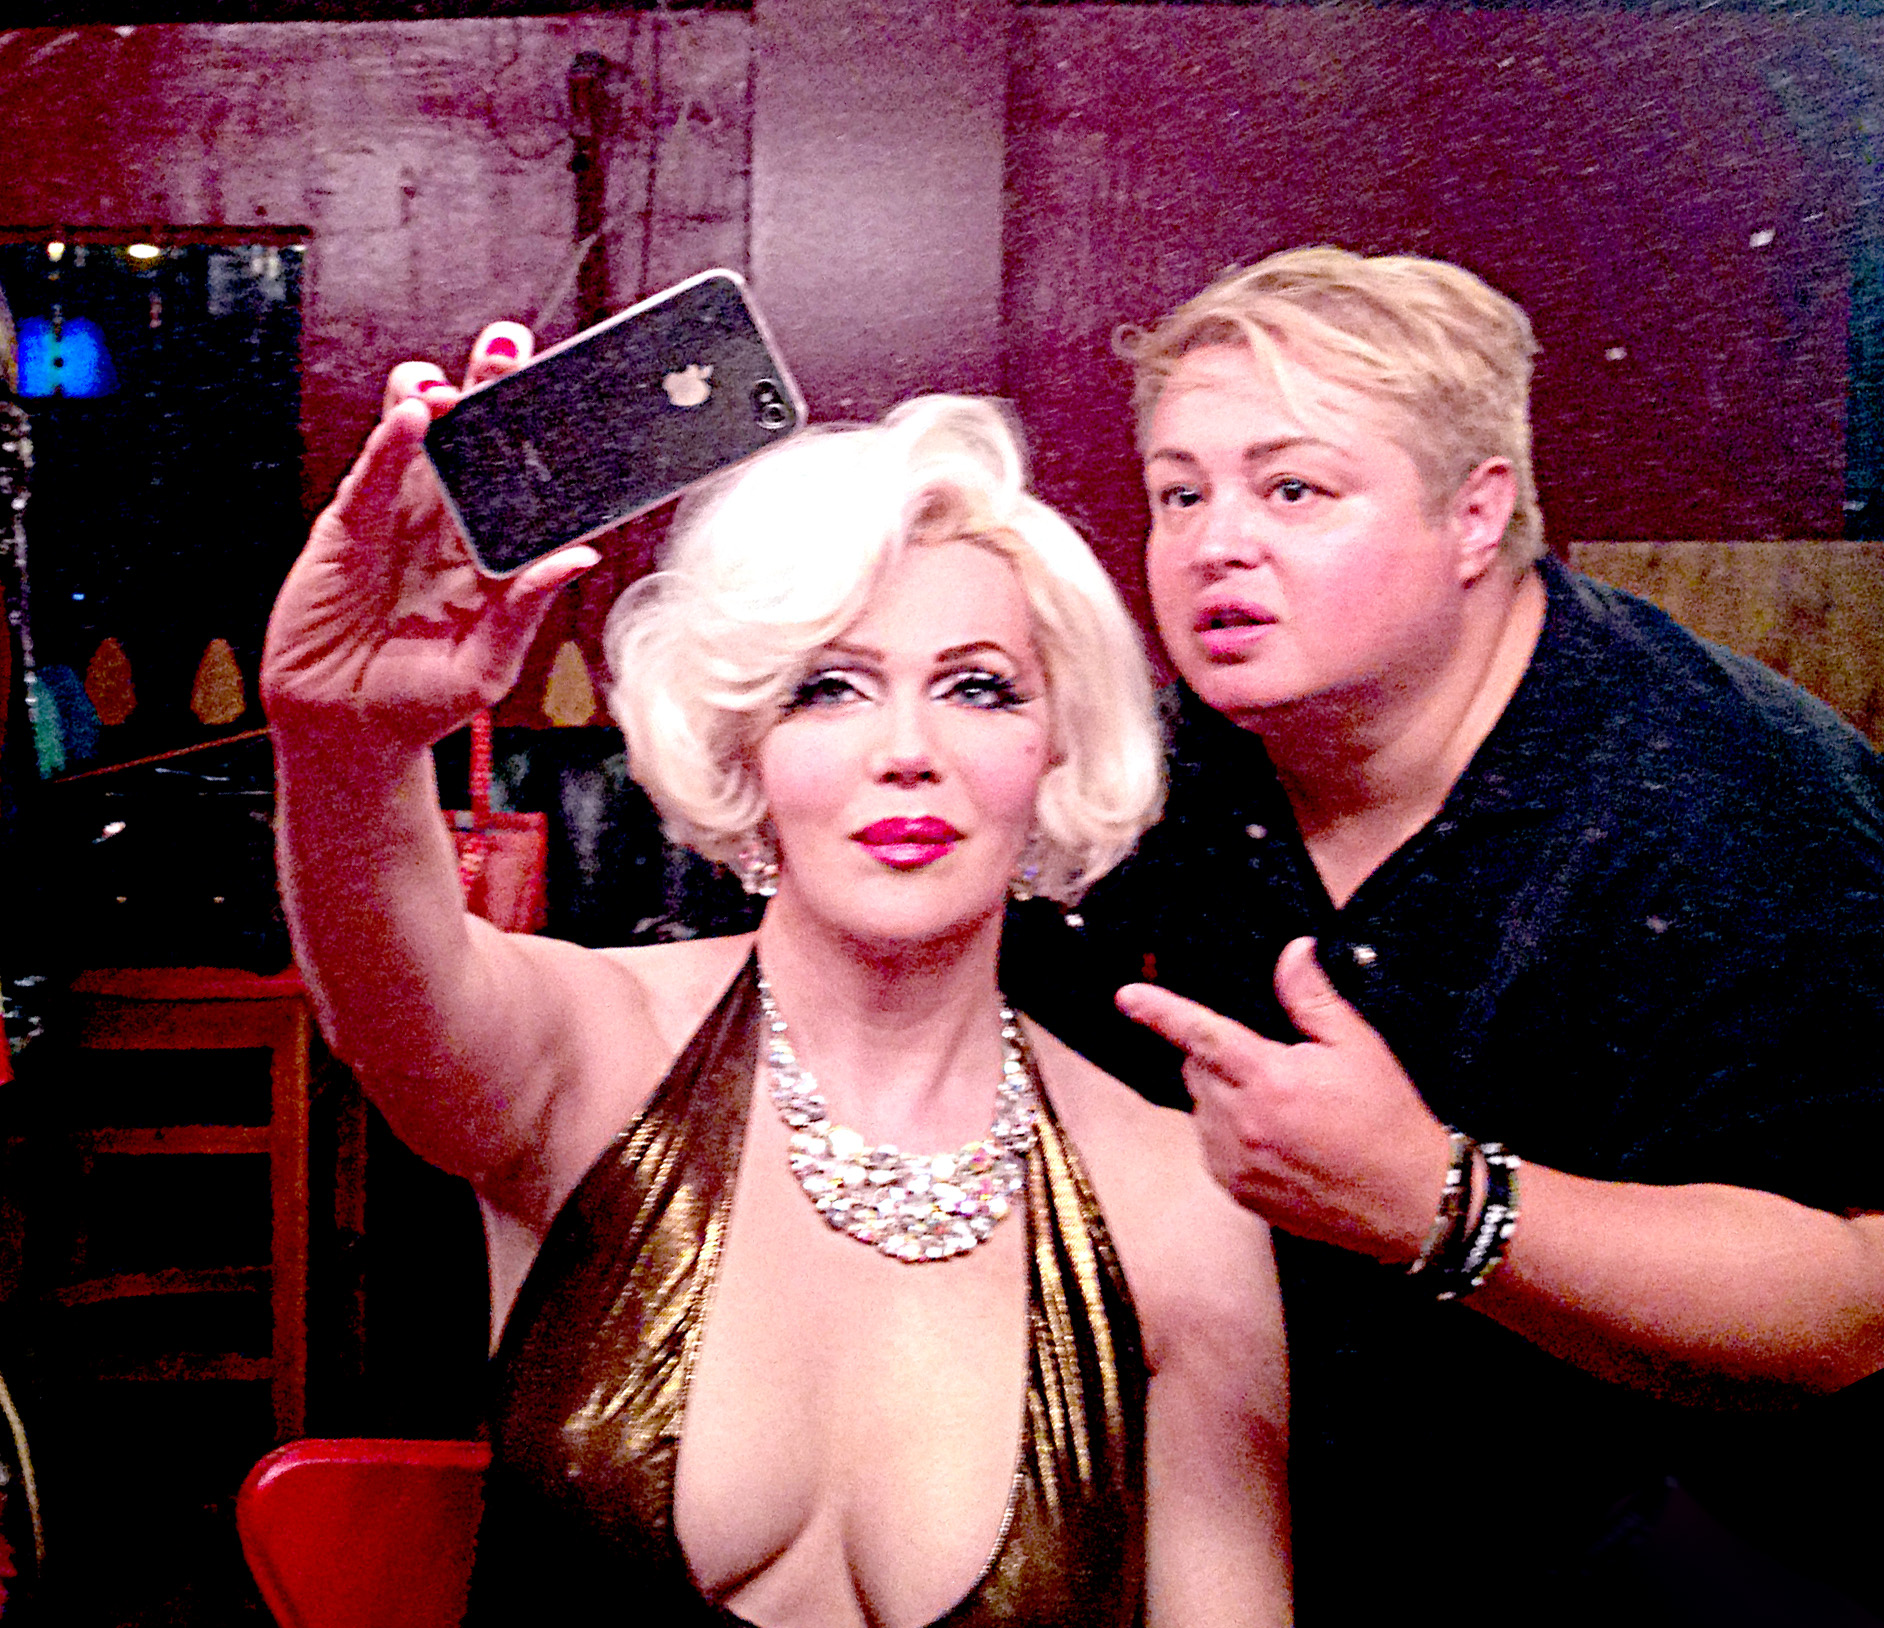 """Calpernia as Marilyn"" by the Legendary Jimmy James"